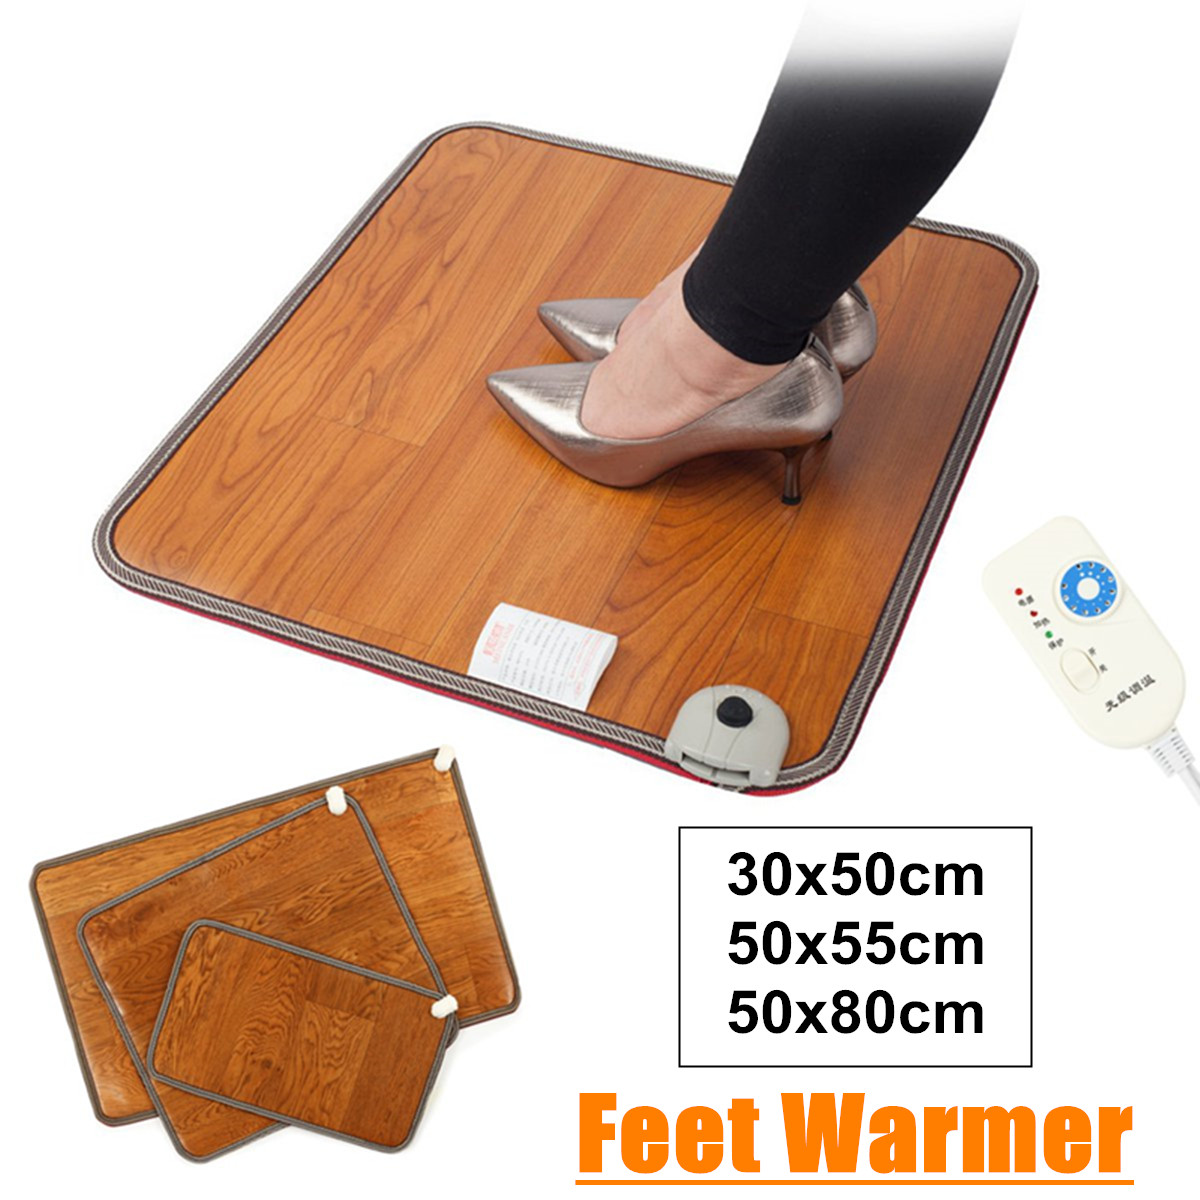 Feet Warmer Heated Floor Carpet Pad Mat